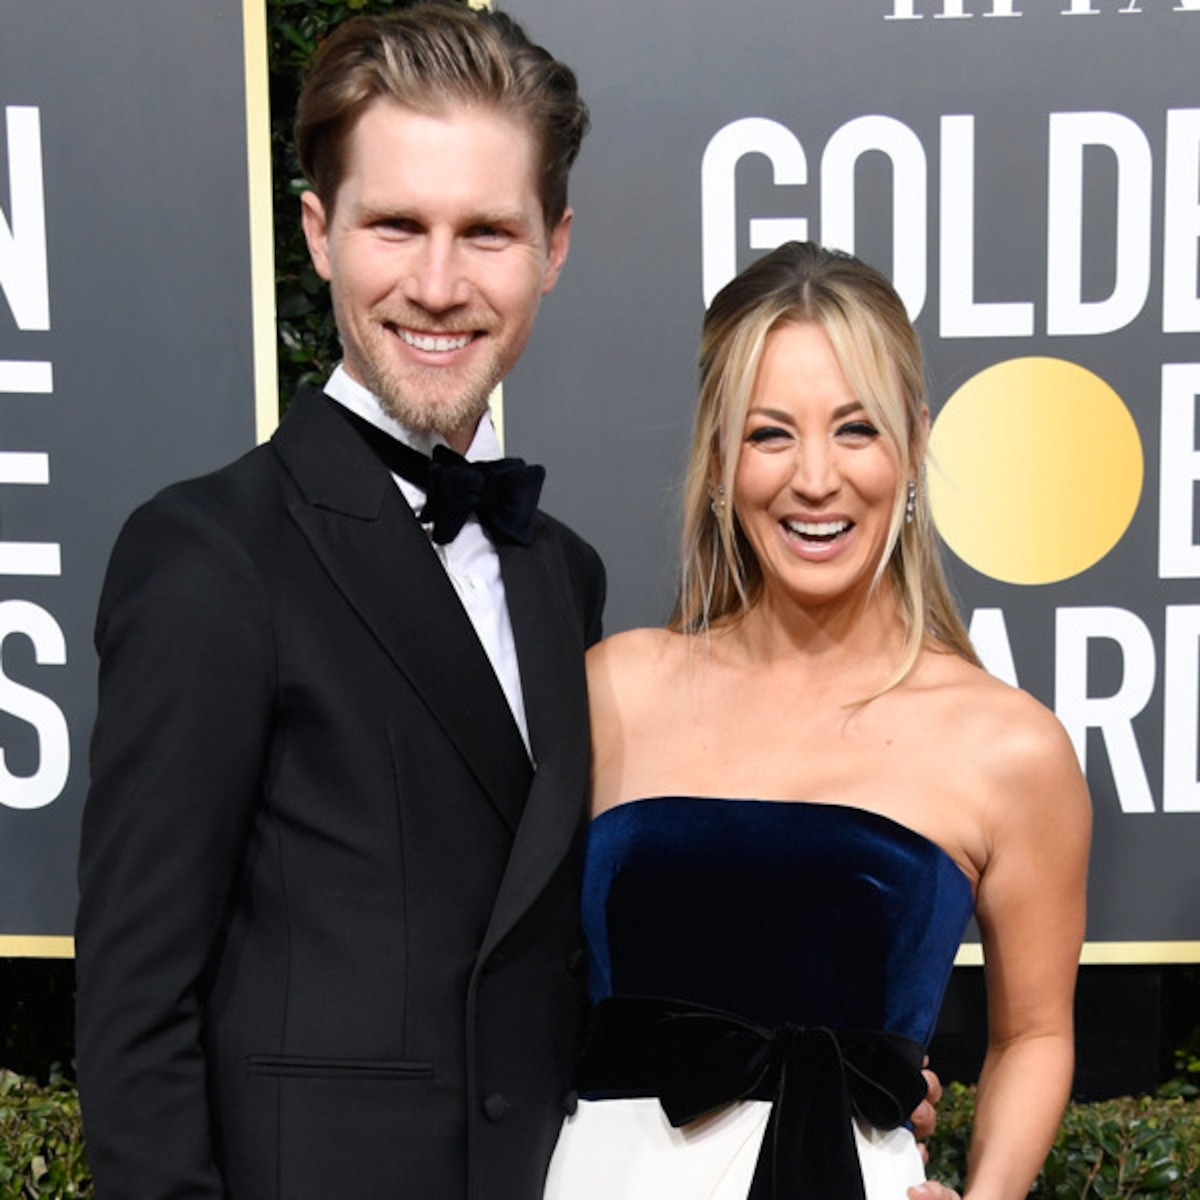 After the Big Bang: Inside Kaley Cuoco's Next Chapter - E! Online  Deutschland